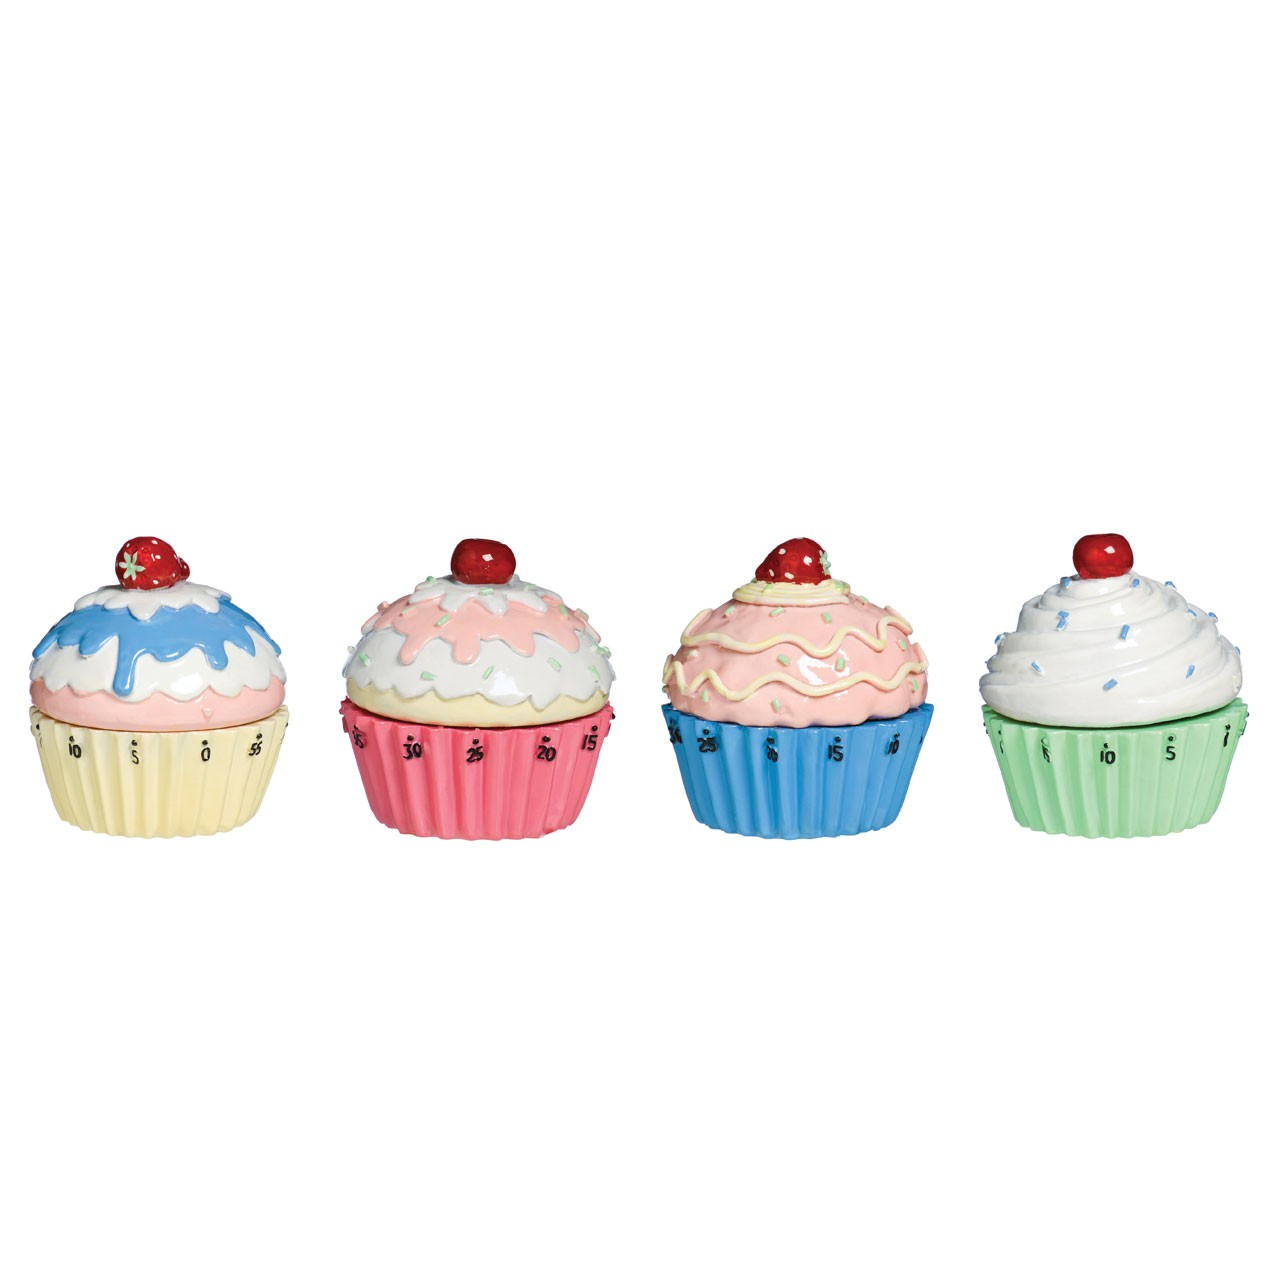 Attractive Cupcake Timer 4 Assorted With Awesome Cupcake Design